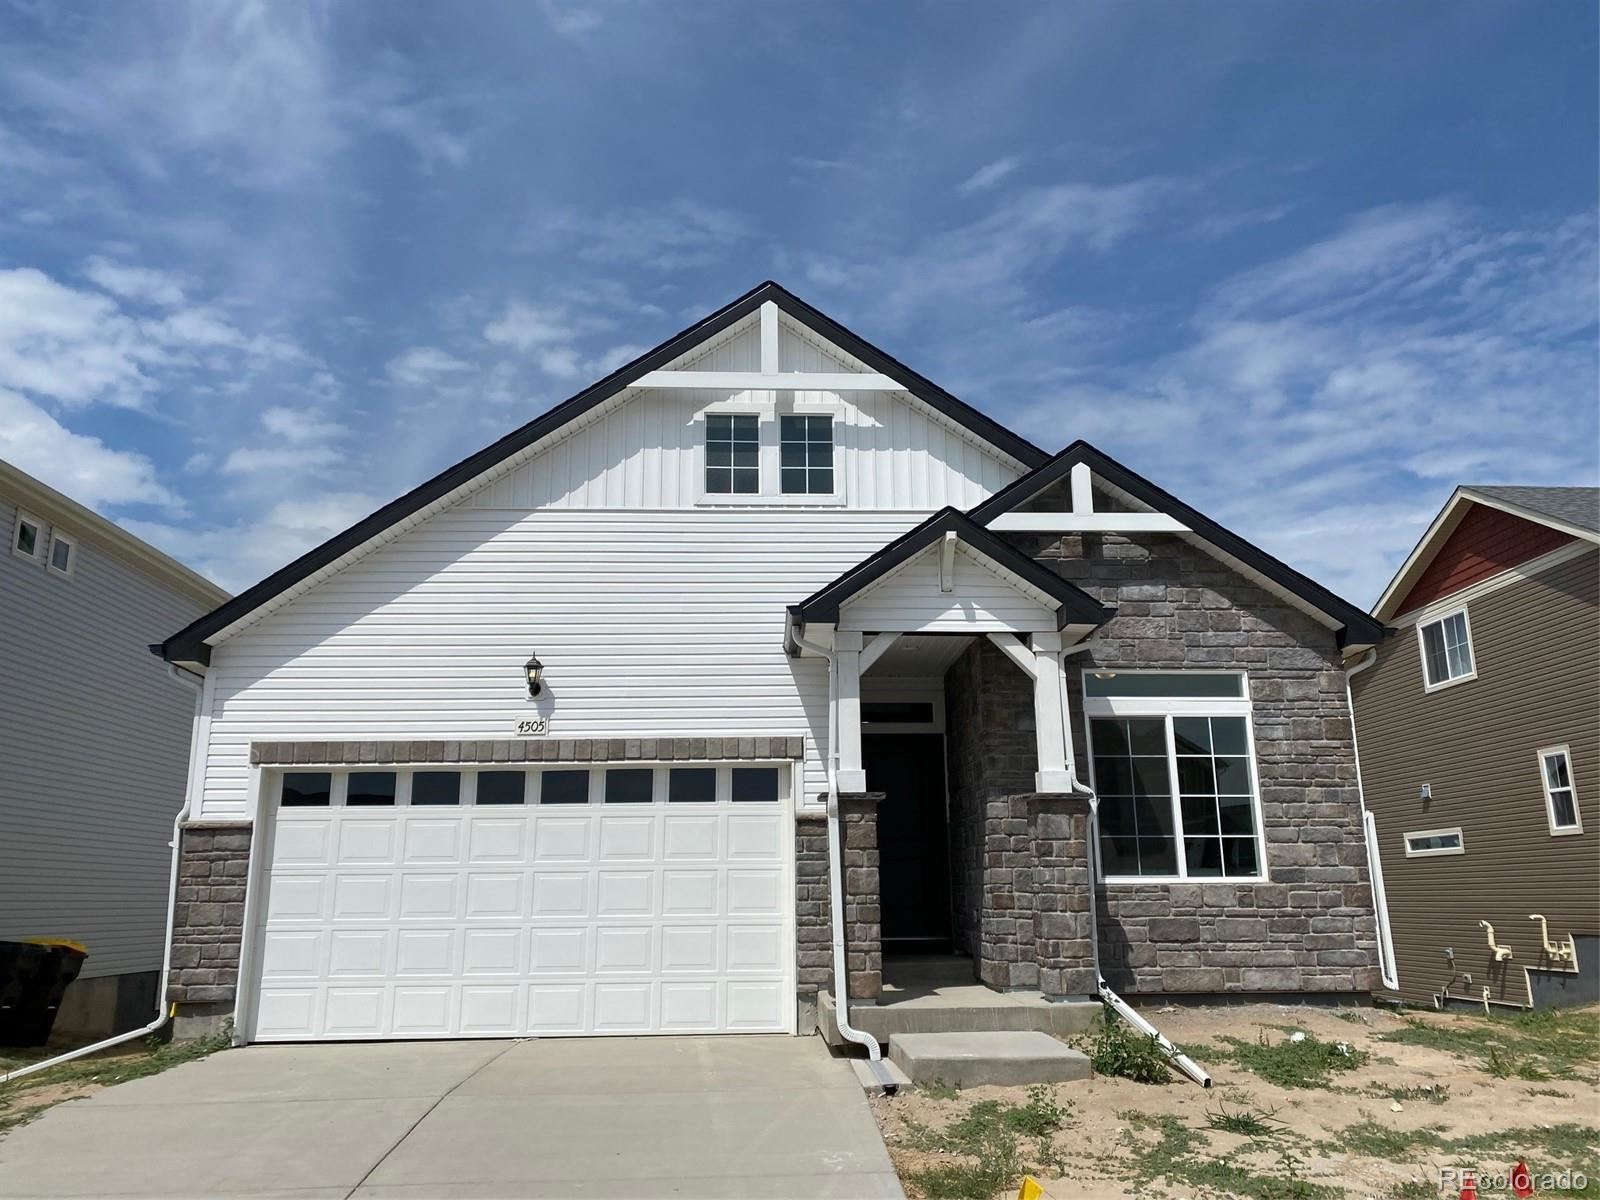 4505 Picadilly Court, Aurora, CO 80019 - #: 6133447